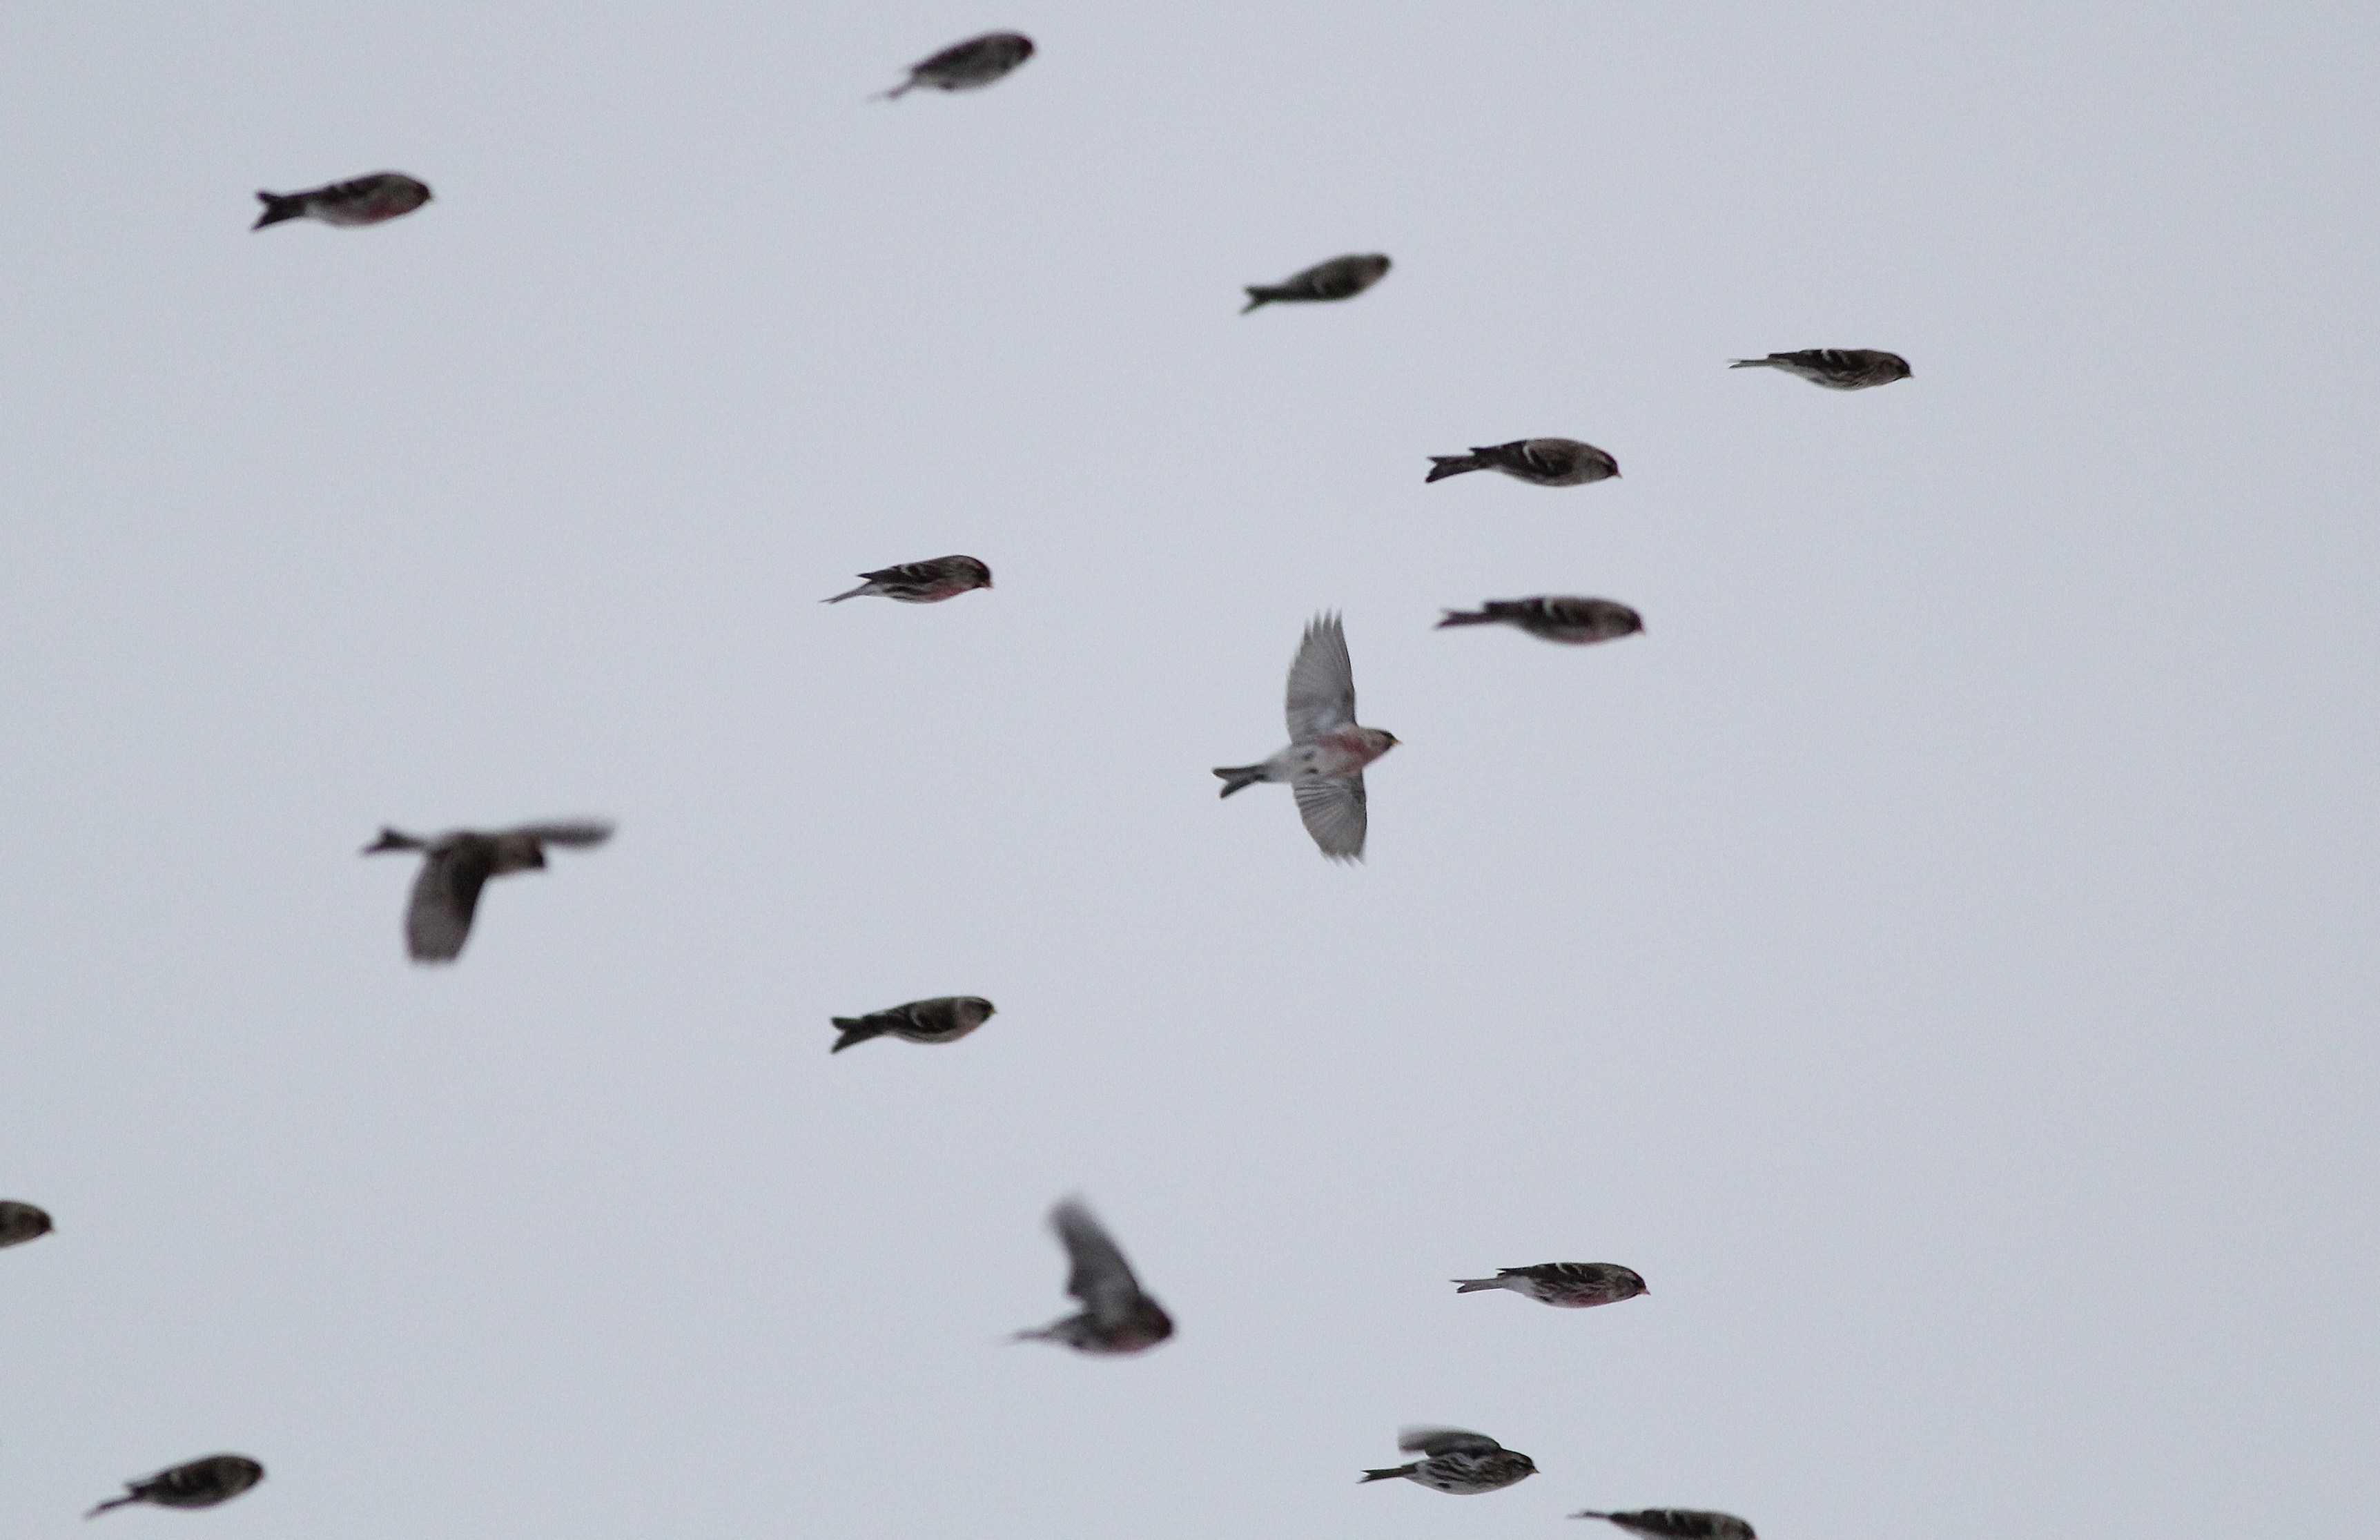 Redpolls in flight. (Photo by Alex Lamoreaux)